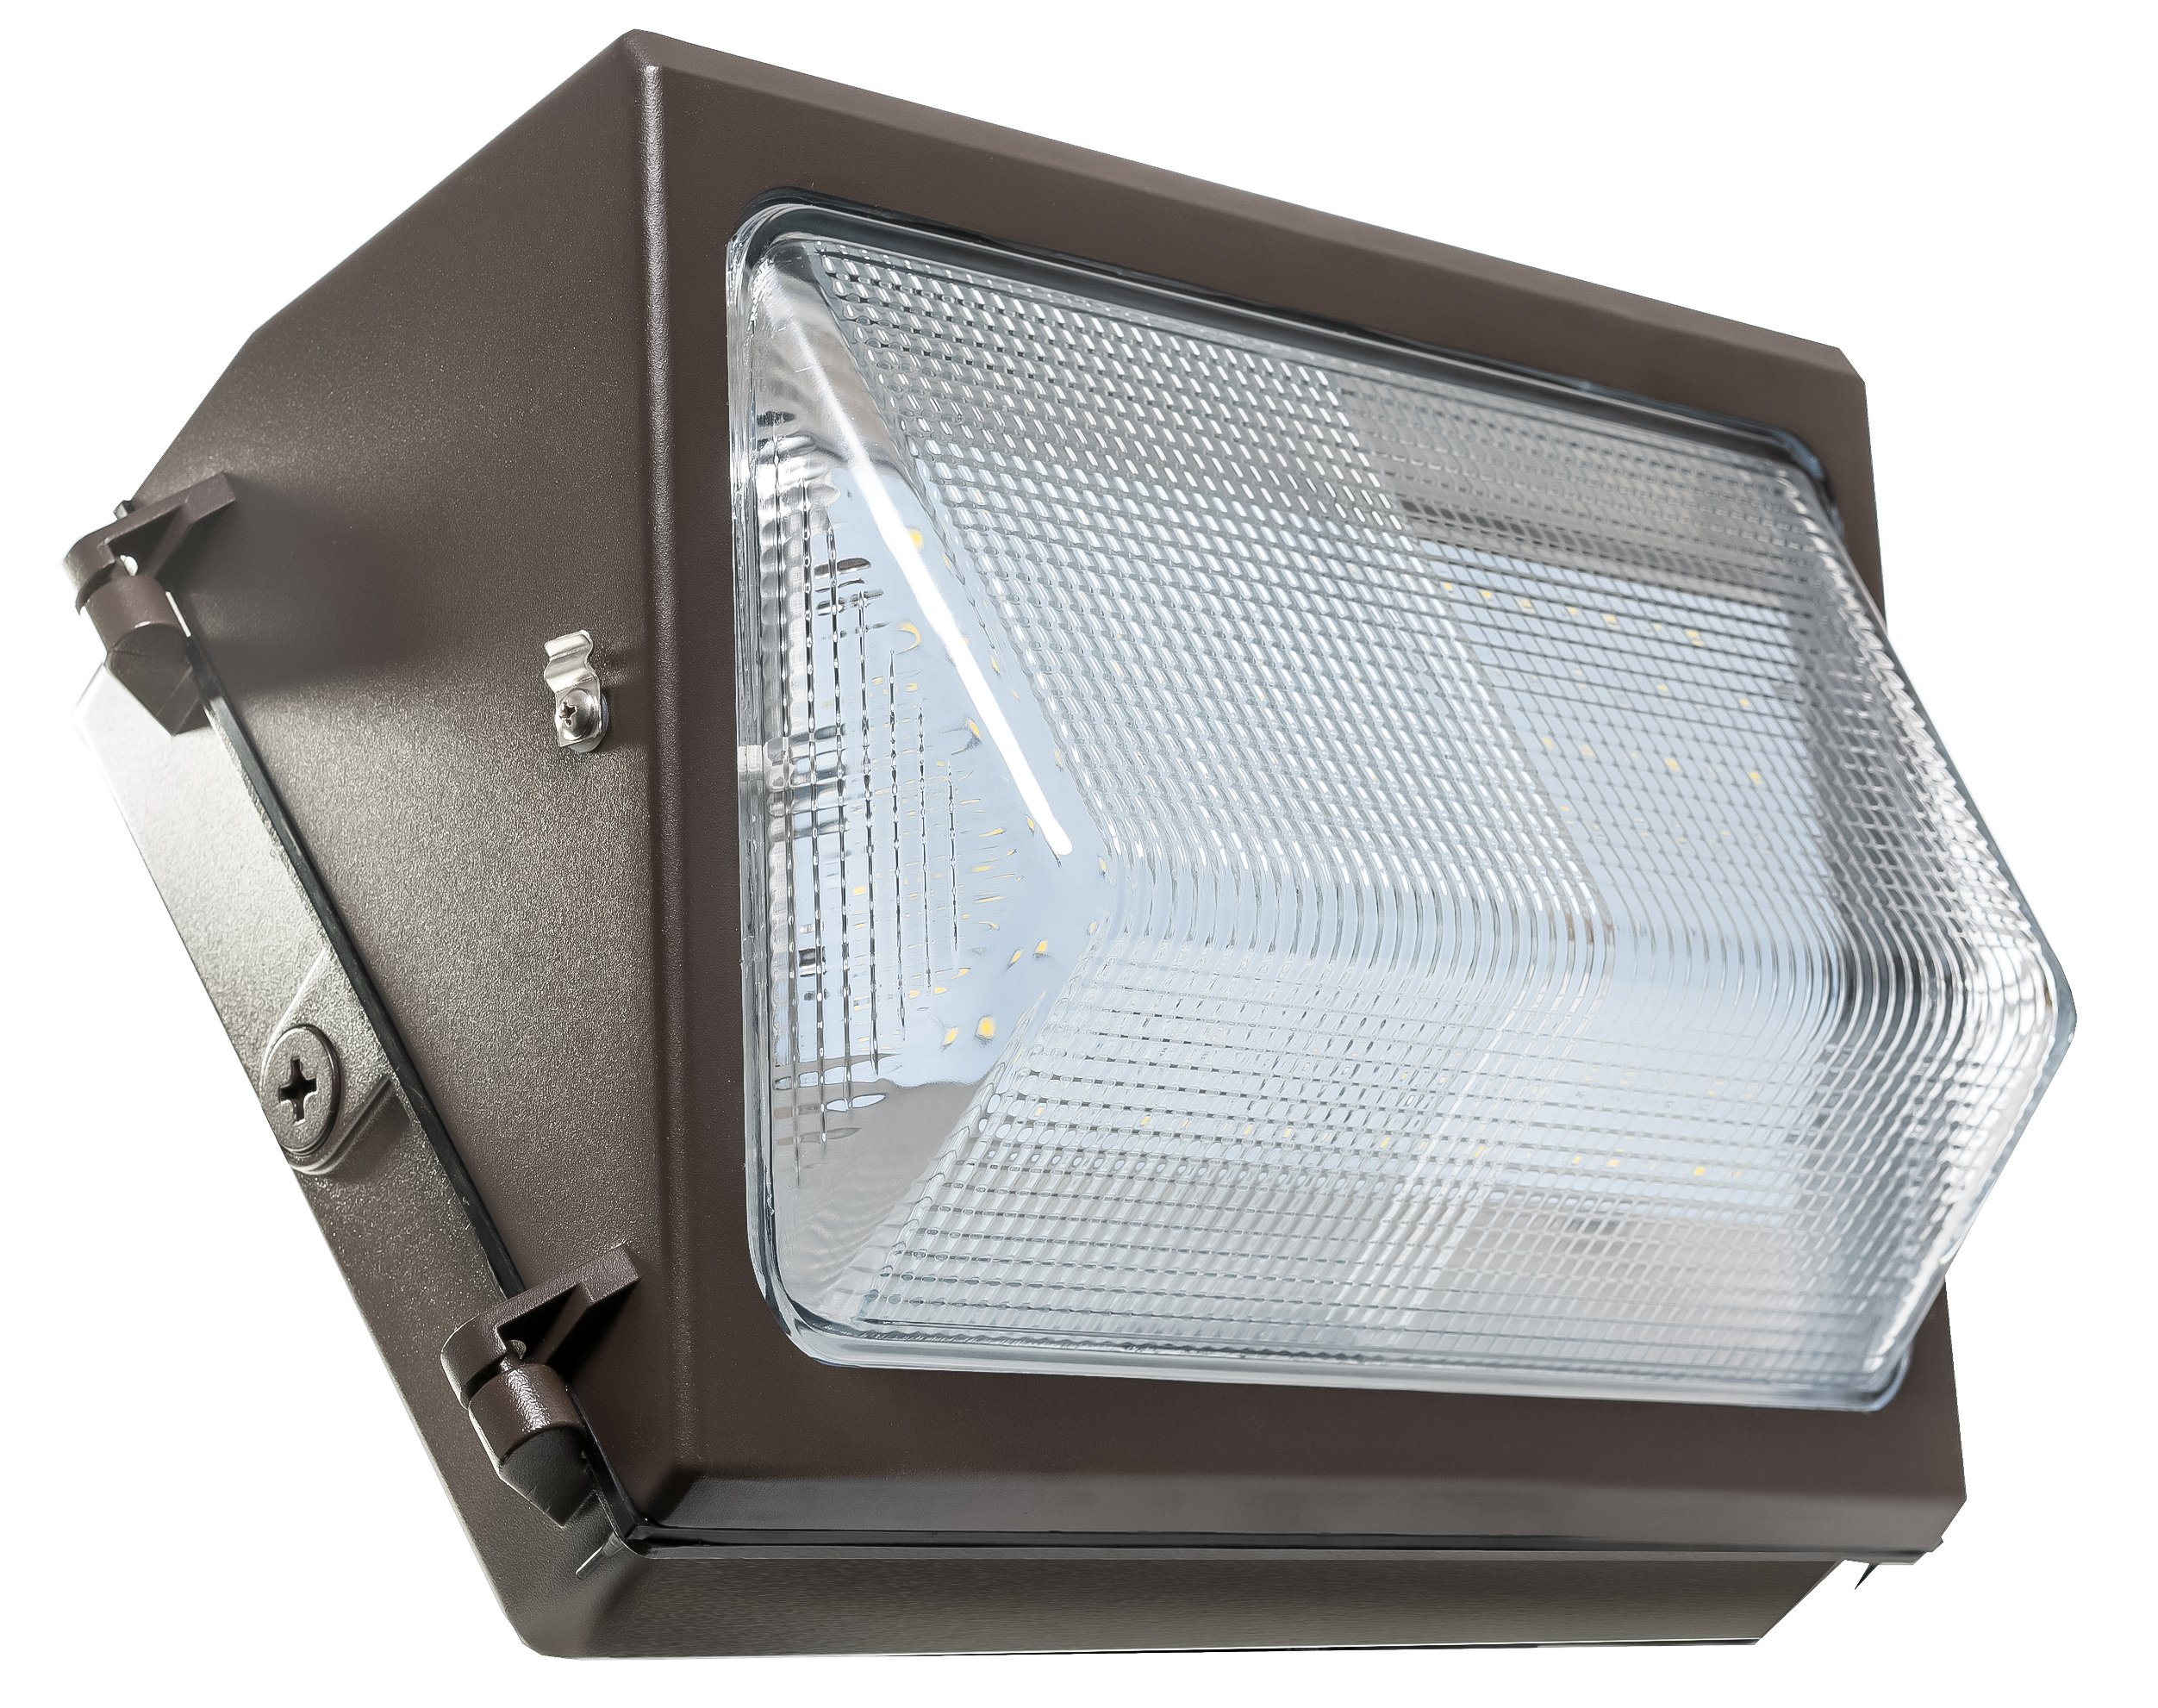 Westgate LED Wall Pack Fixture - Outdoor Security Wall Light for Area, Yard, Parking - Commercial Grade Industrial Quality HPS/HID Replacement - IP65 Waterproof UL Listed (80 Watt, 5000K Cool White)